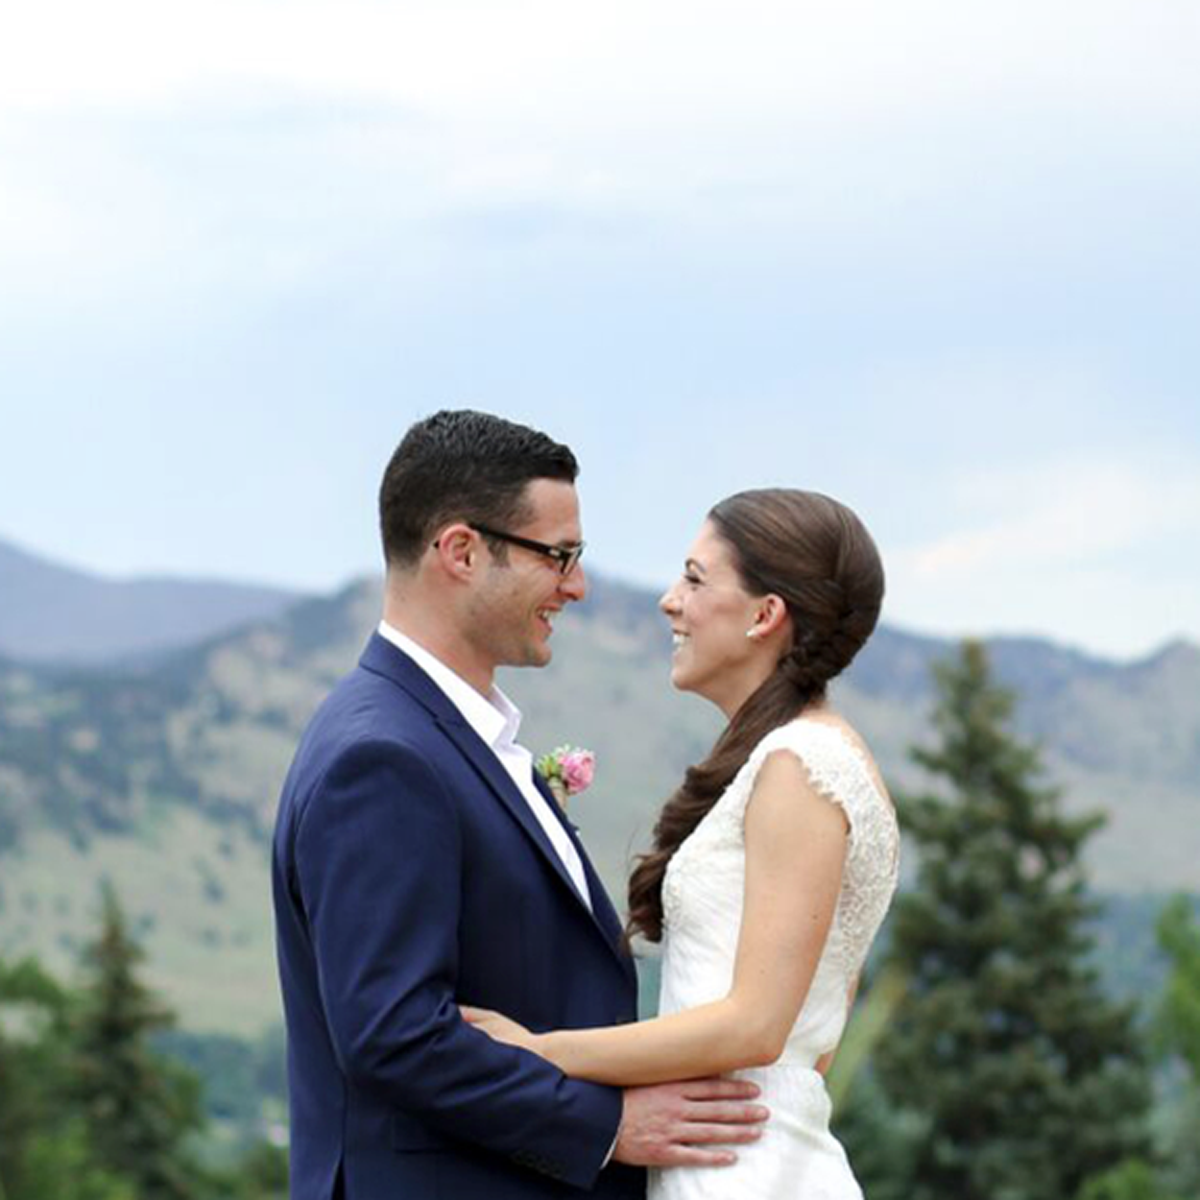 Kayla and Edward Get Married - Colorado